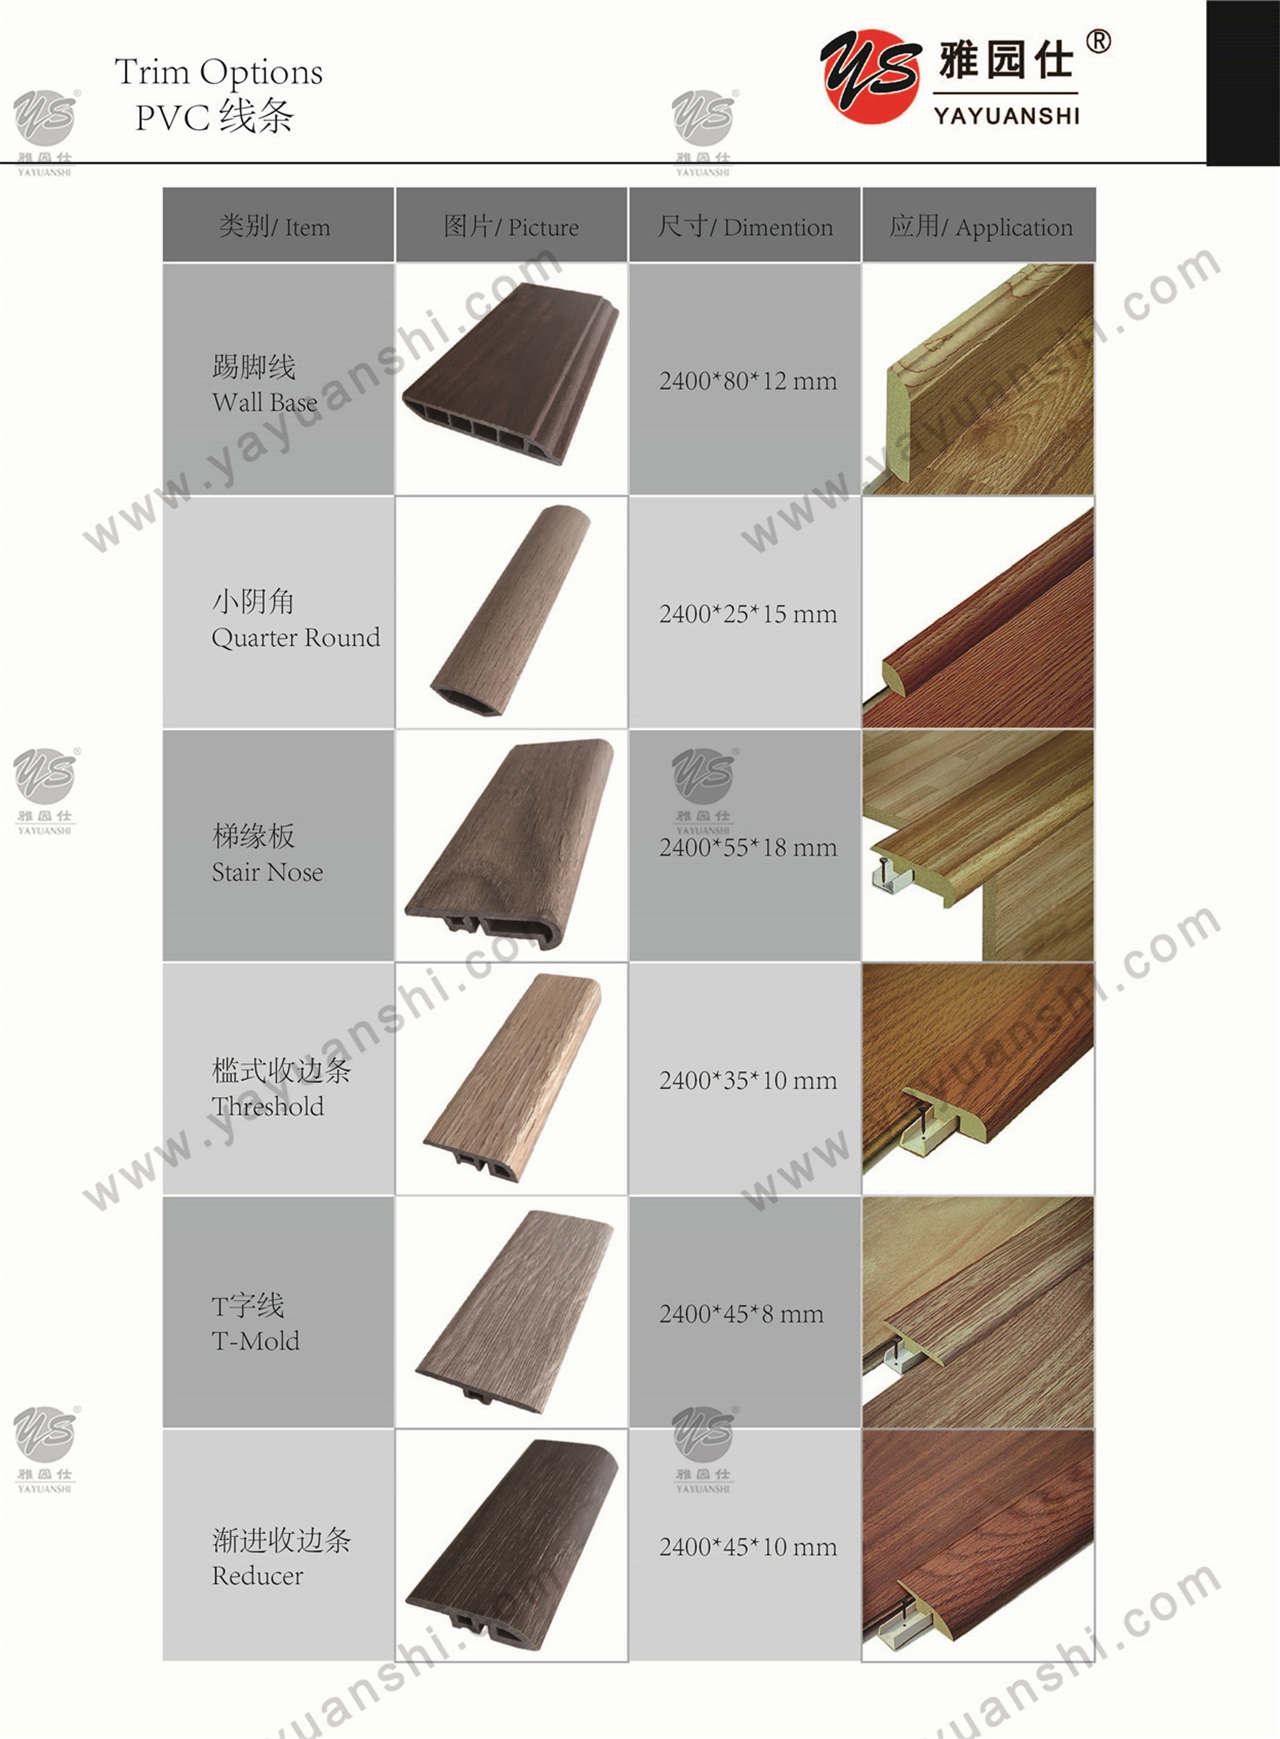 yayuanshi pvc vinyl flooring spc flooring luxury vinyl tiles planks. Black Bedroom Furniture Sets. Home Design Ideas